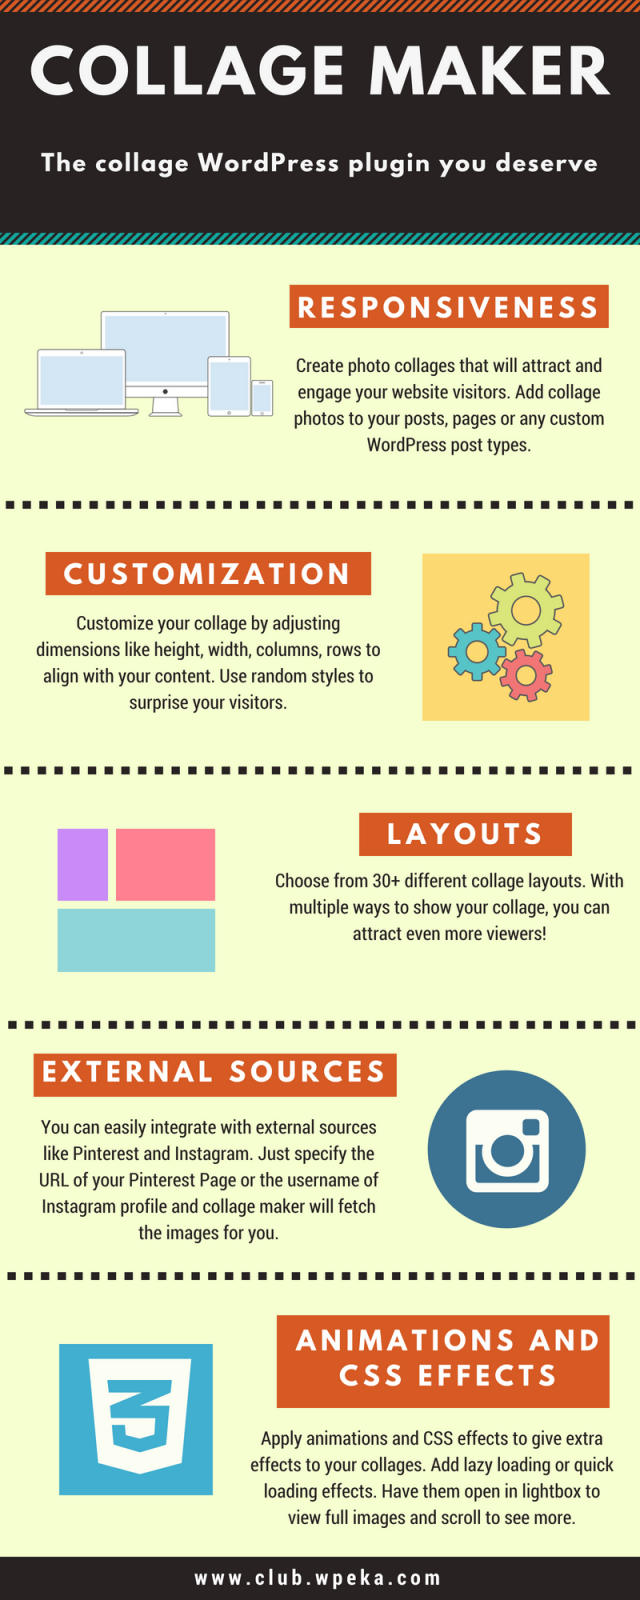 Collage maker plugin infographic